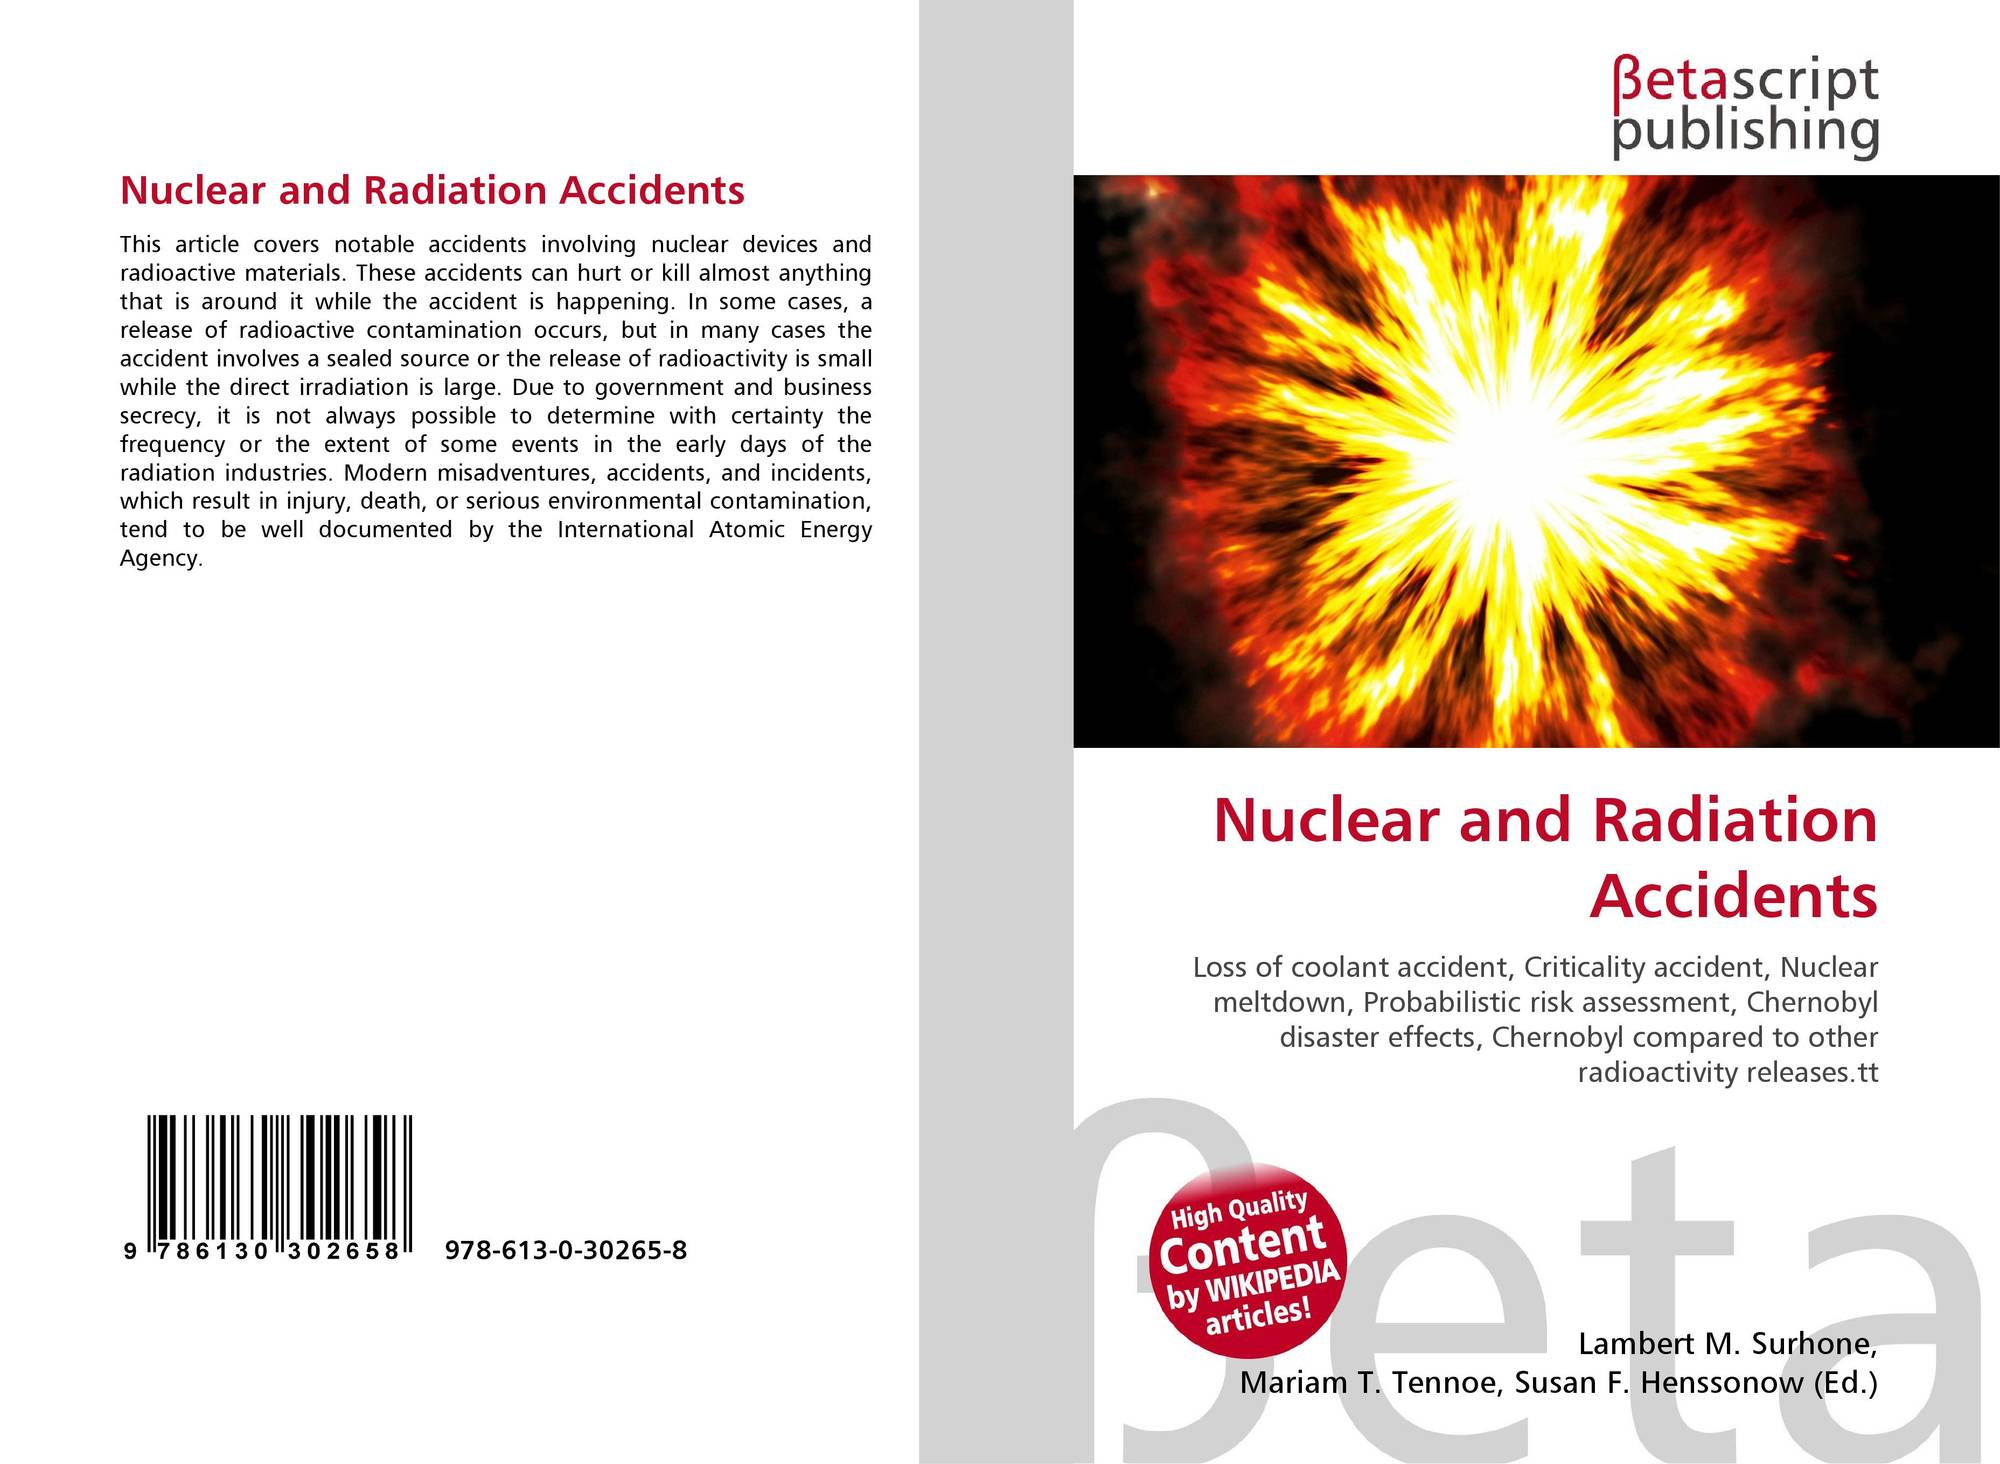 Nuclear and radiation accidents and incidents